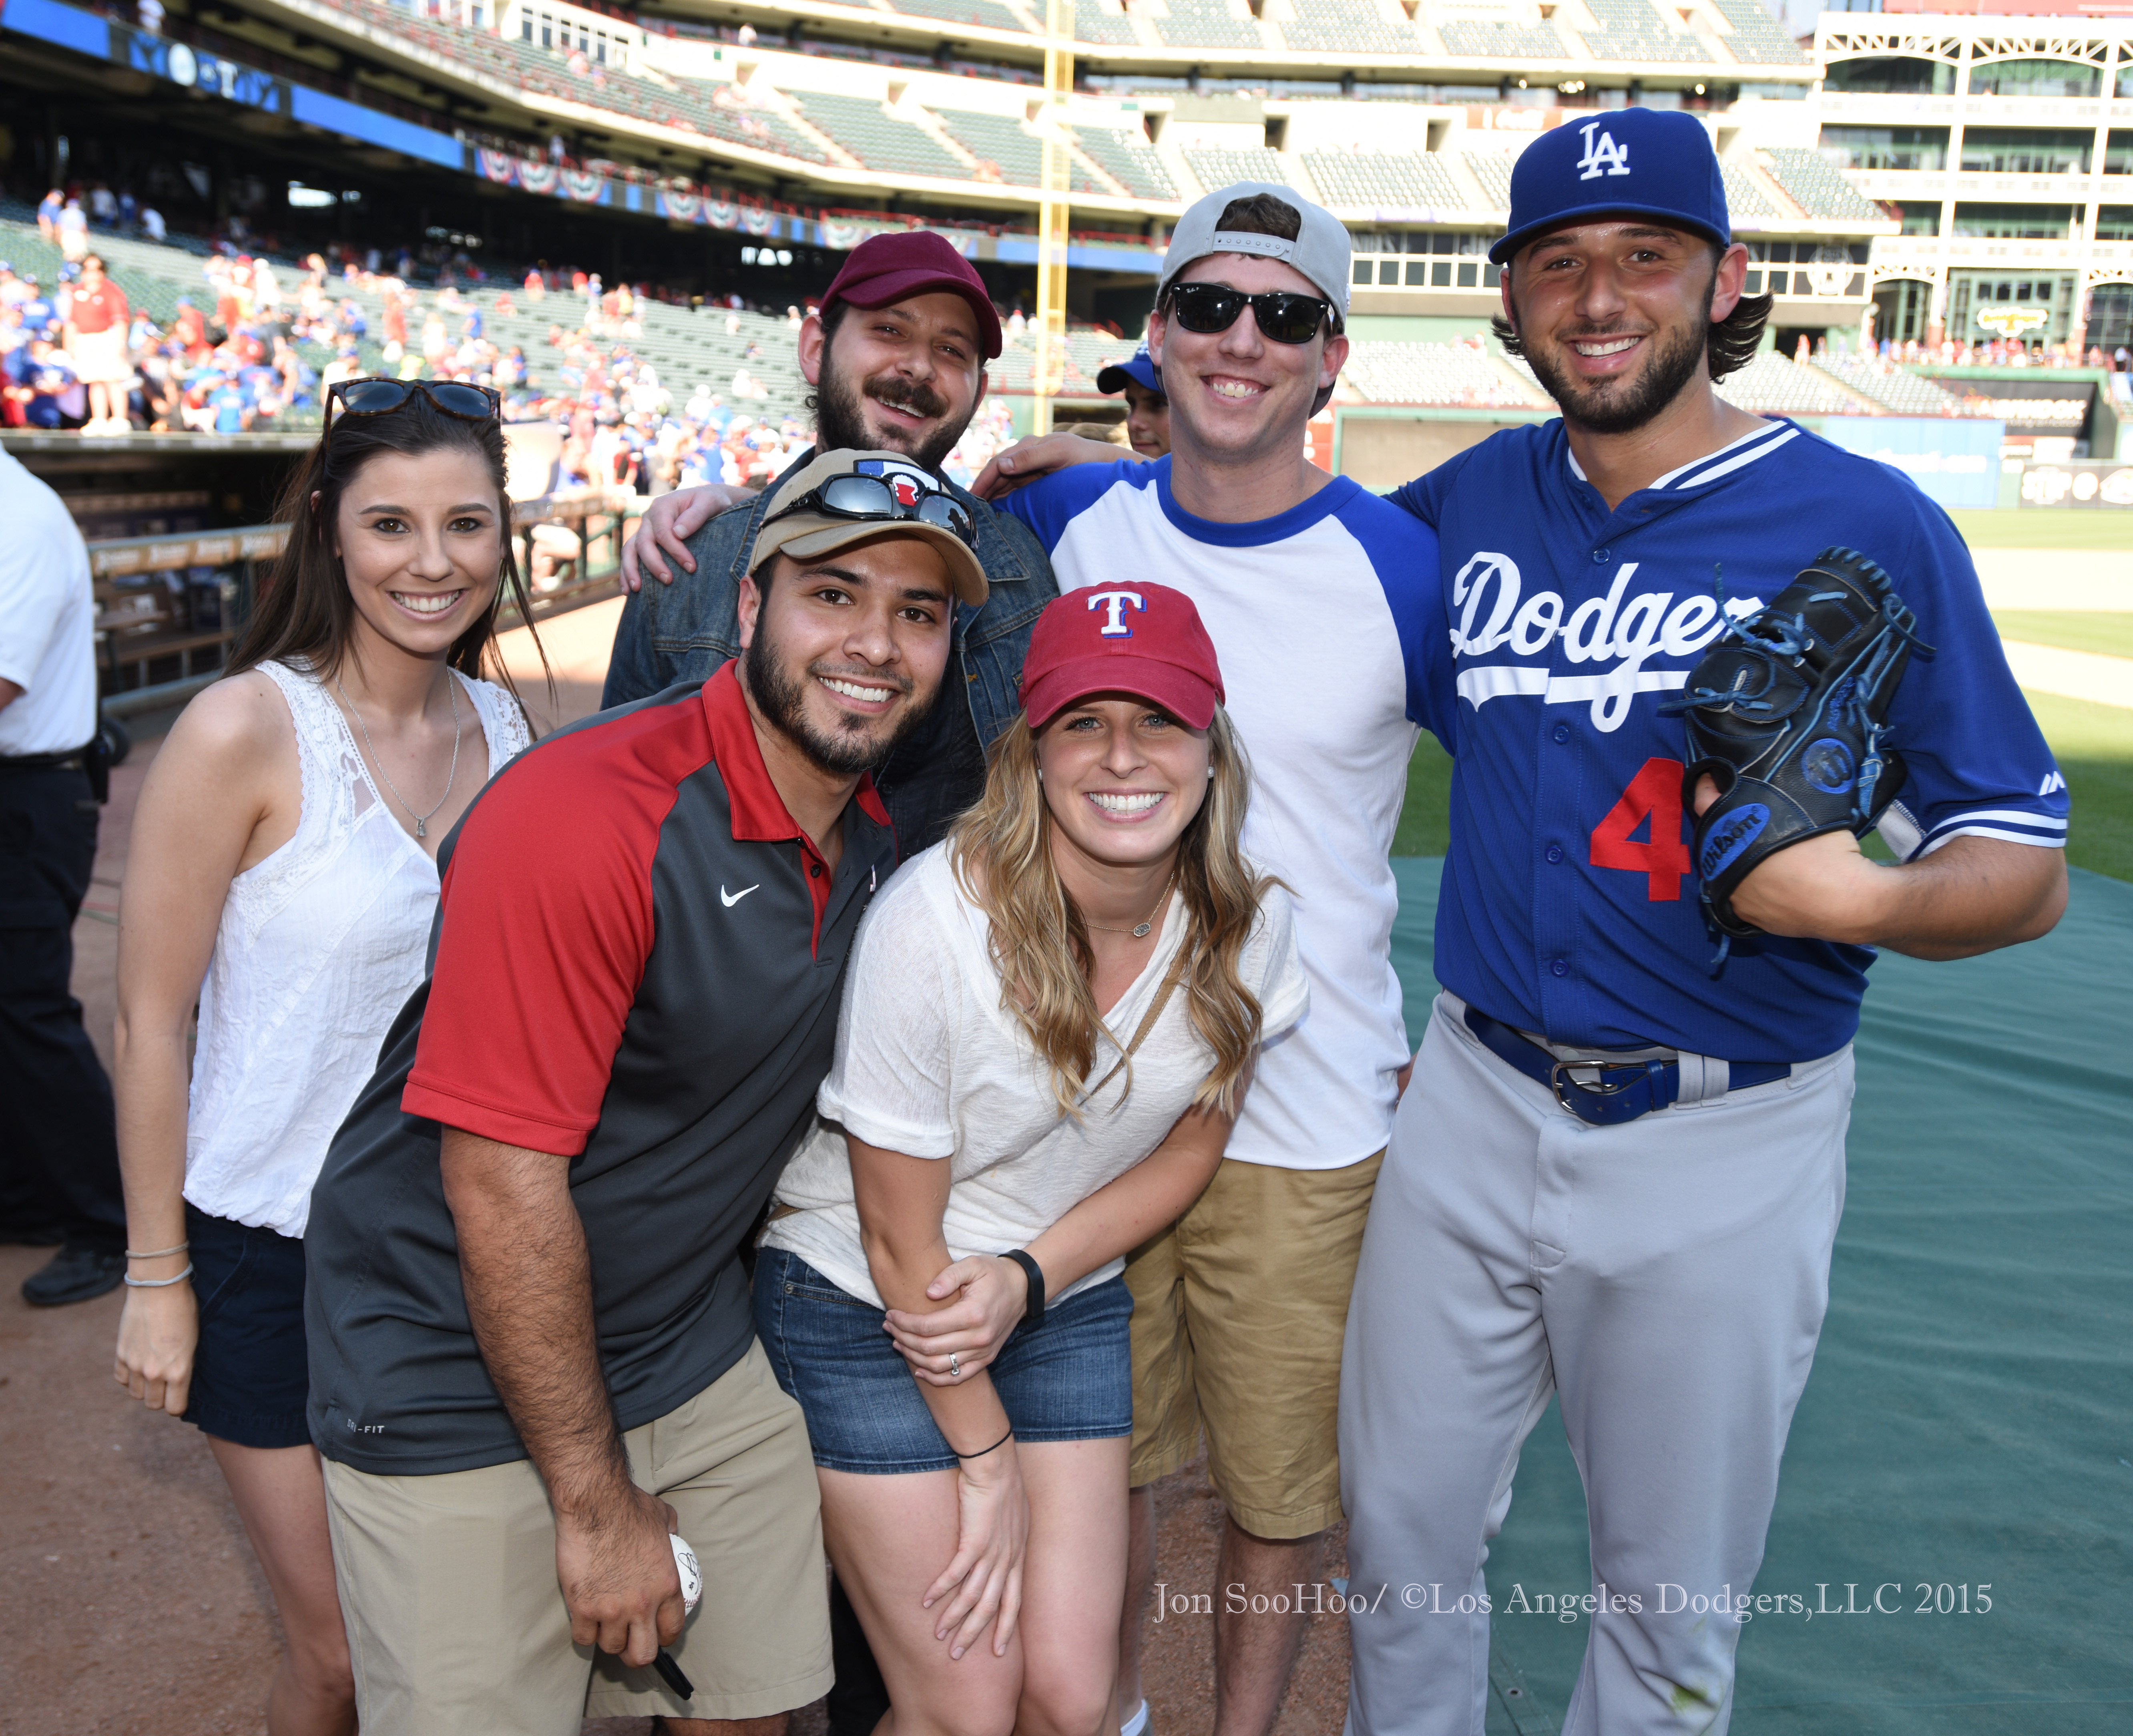 Mike Bolsinger with family and friends prior to Los Angeles Dodgers game against the Texas Rangers Monday, June 15, 2015 at Globe Life Park in Arlington Park,Texas. The Rangers beat the Dodgers 4-1. Photo by Jon SooHoo/© Los Angeles Dodgers,LLC 2015,LLC 2015